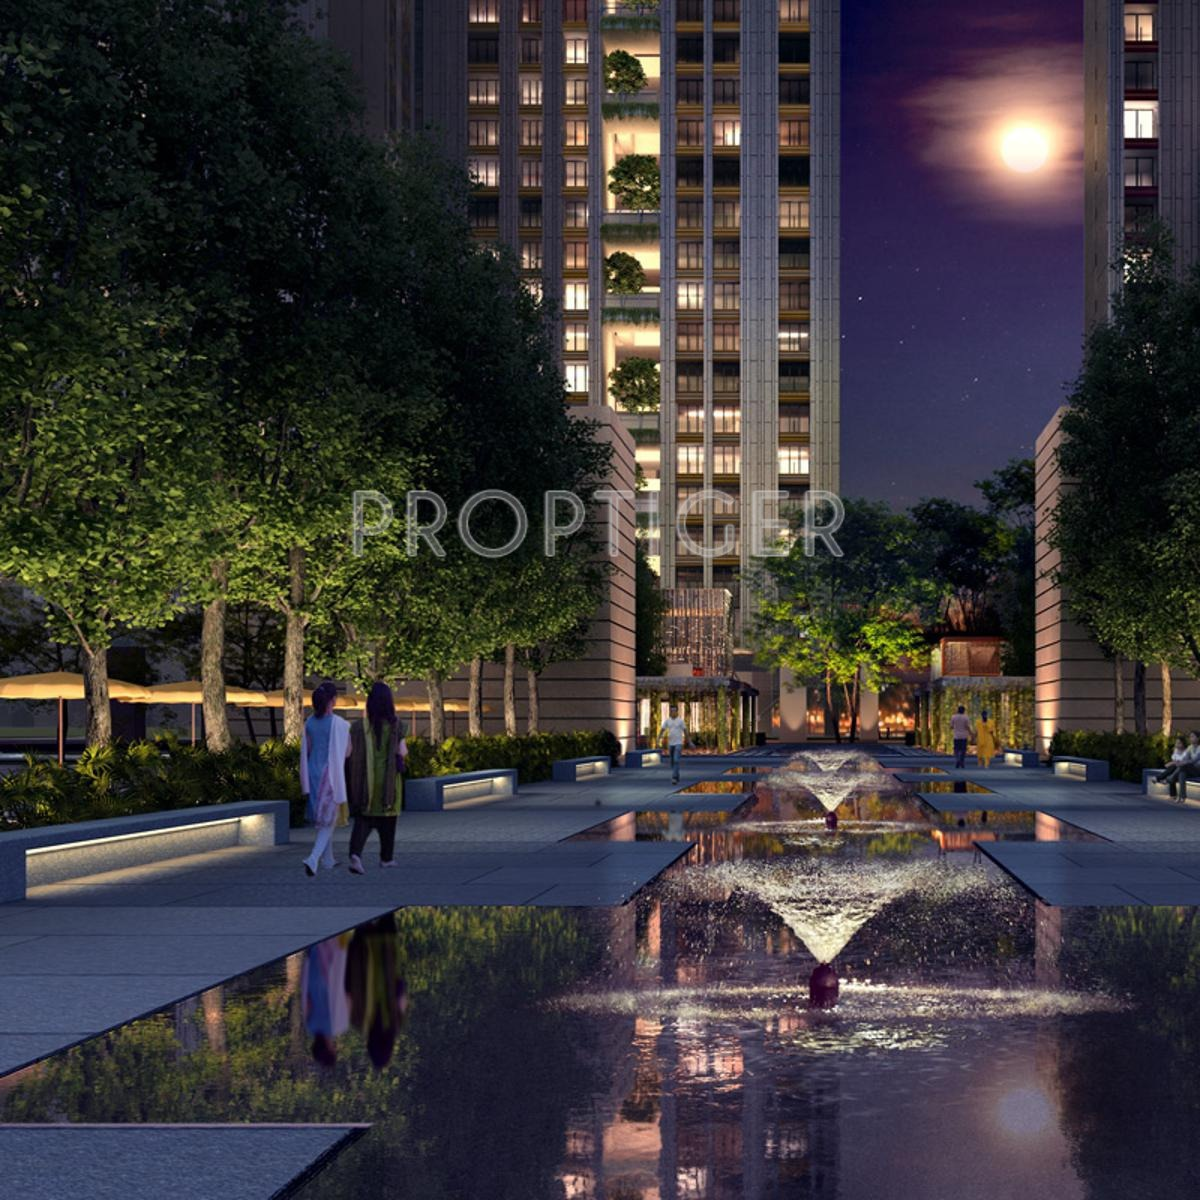 Lodha New Cuffe Parade Floor Plan 1638 Sq Ft 3 Bhk 2t Apartment For Sale In Lodha Group New